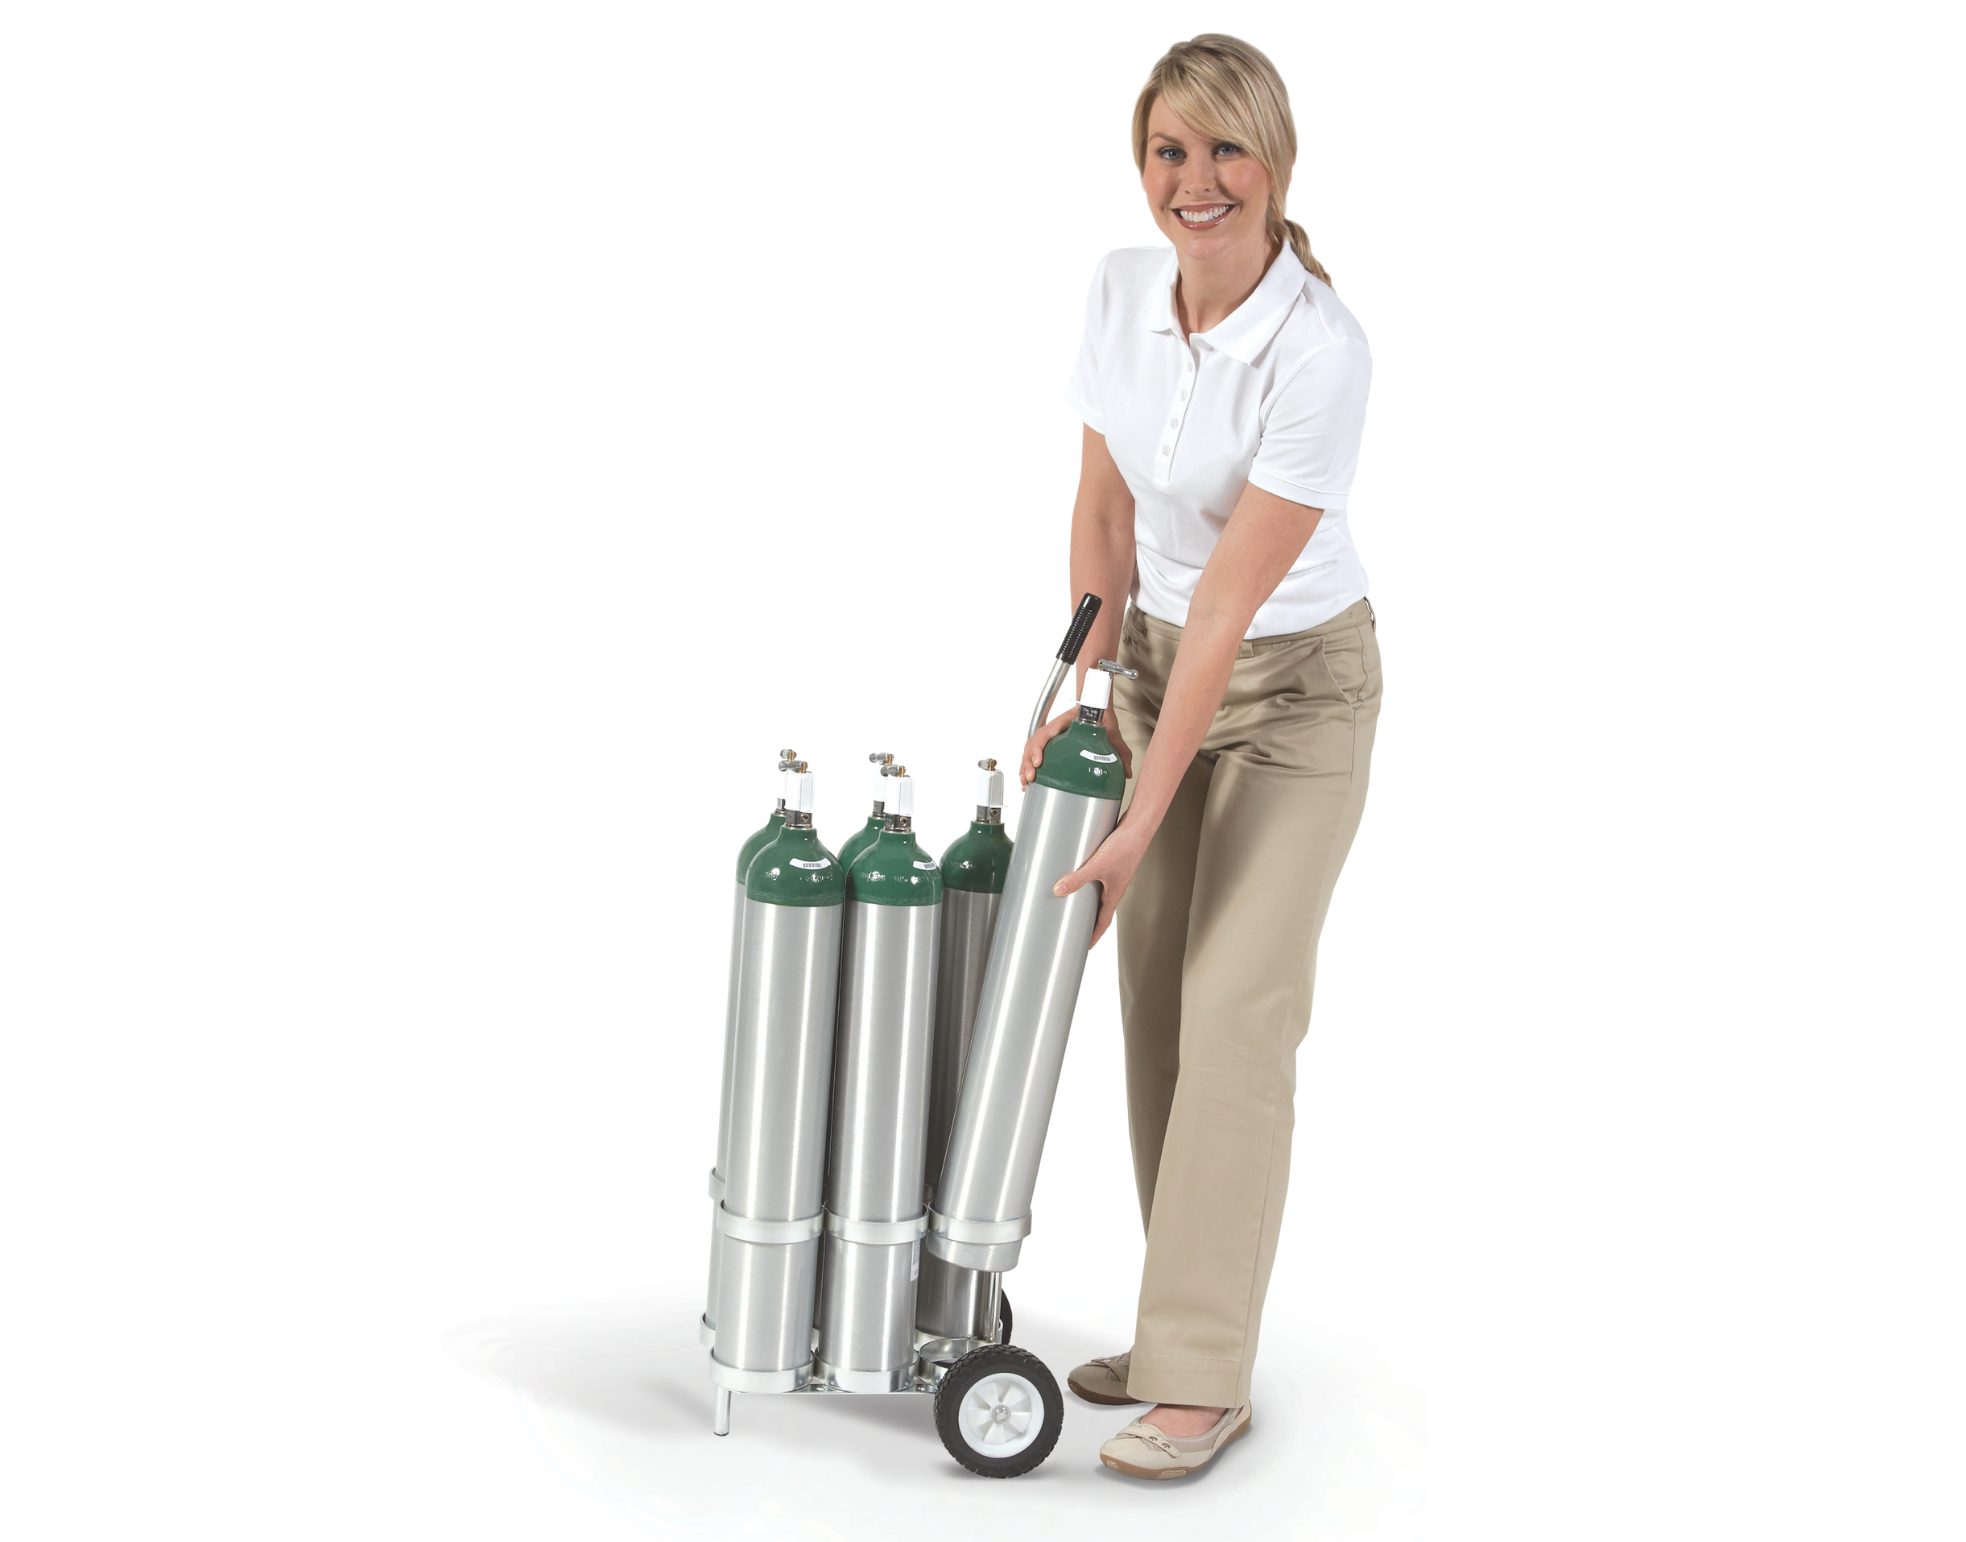 Using Carriers, Bags or Carts When Handling Cylinders